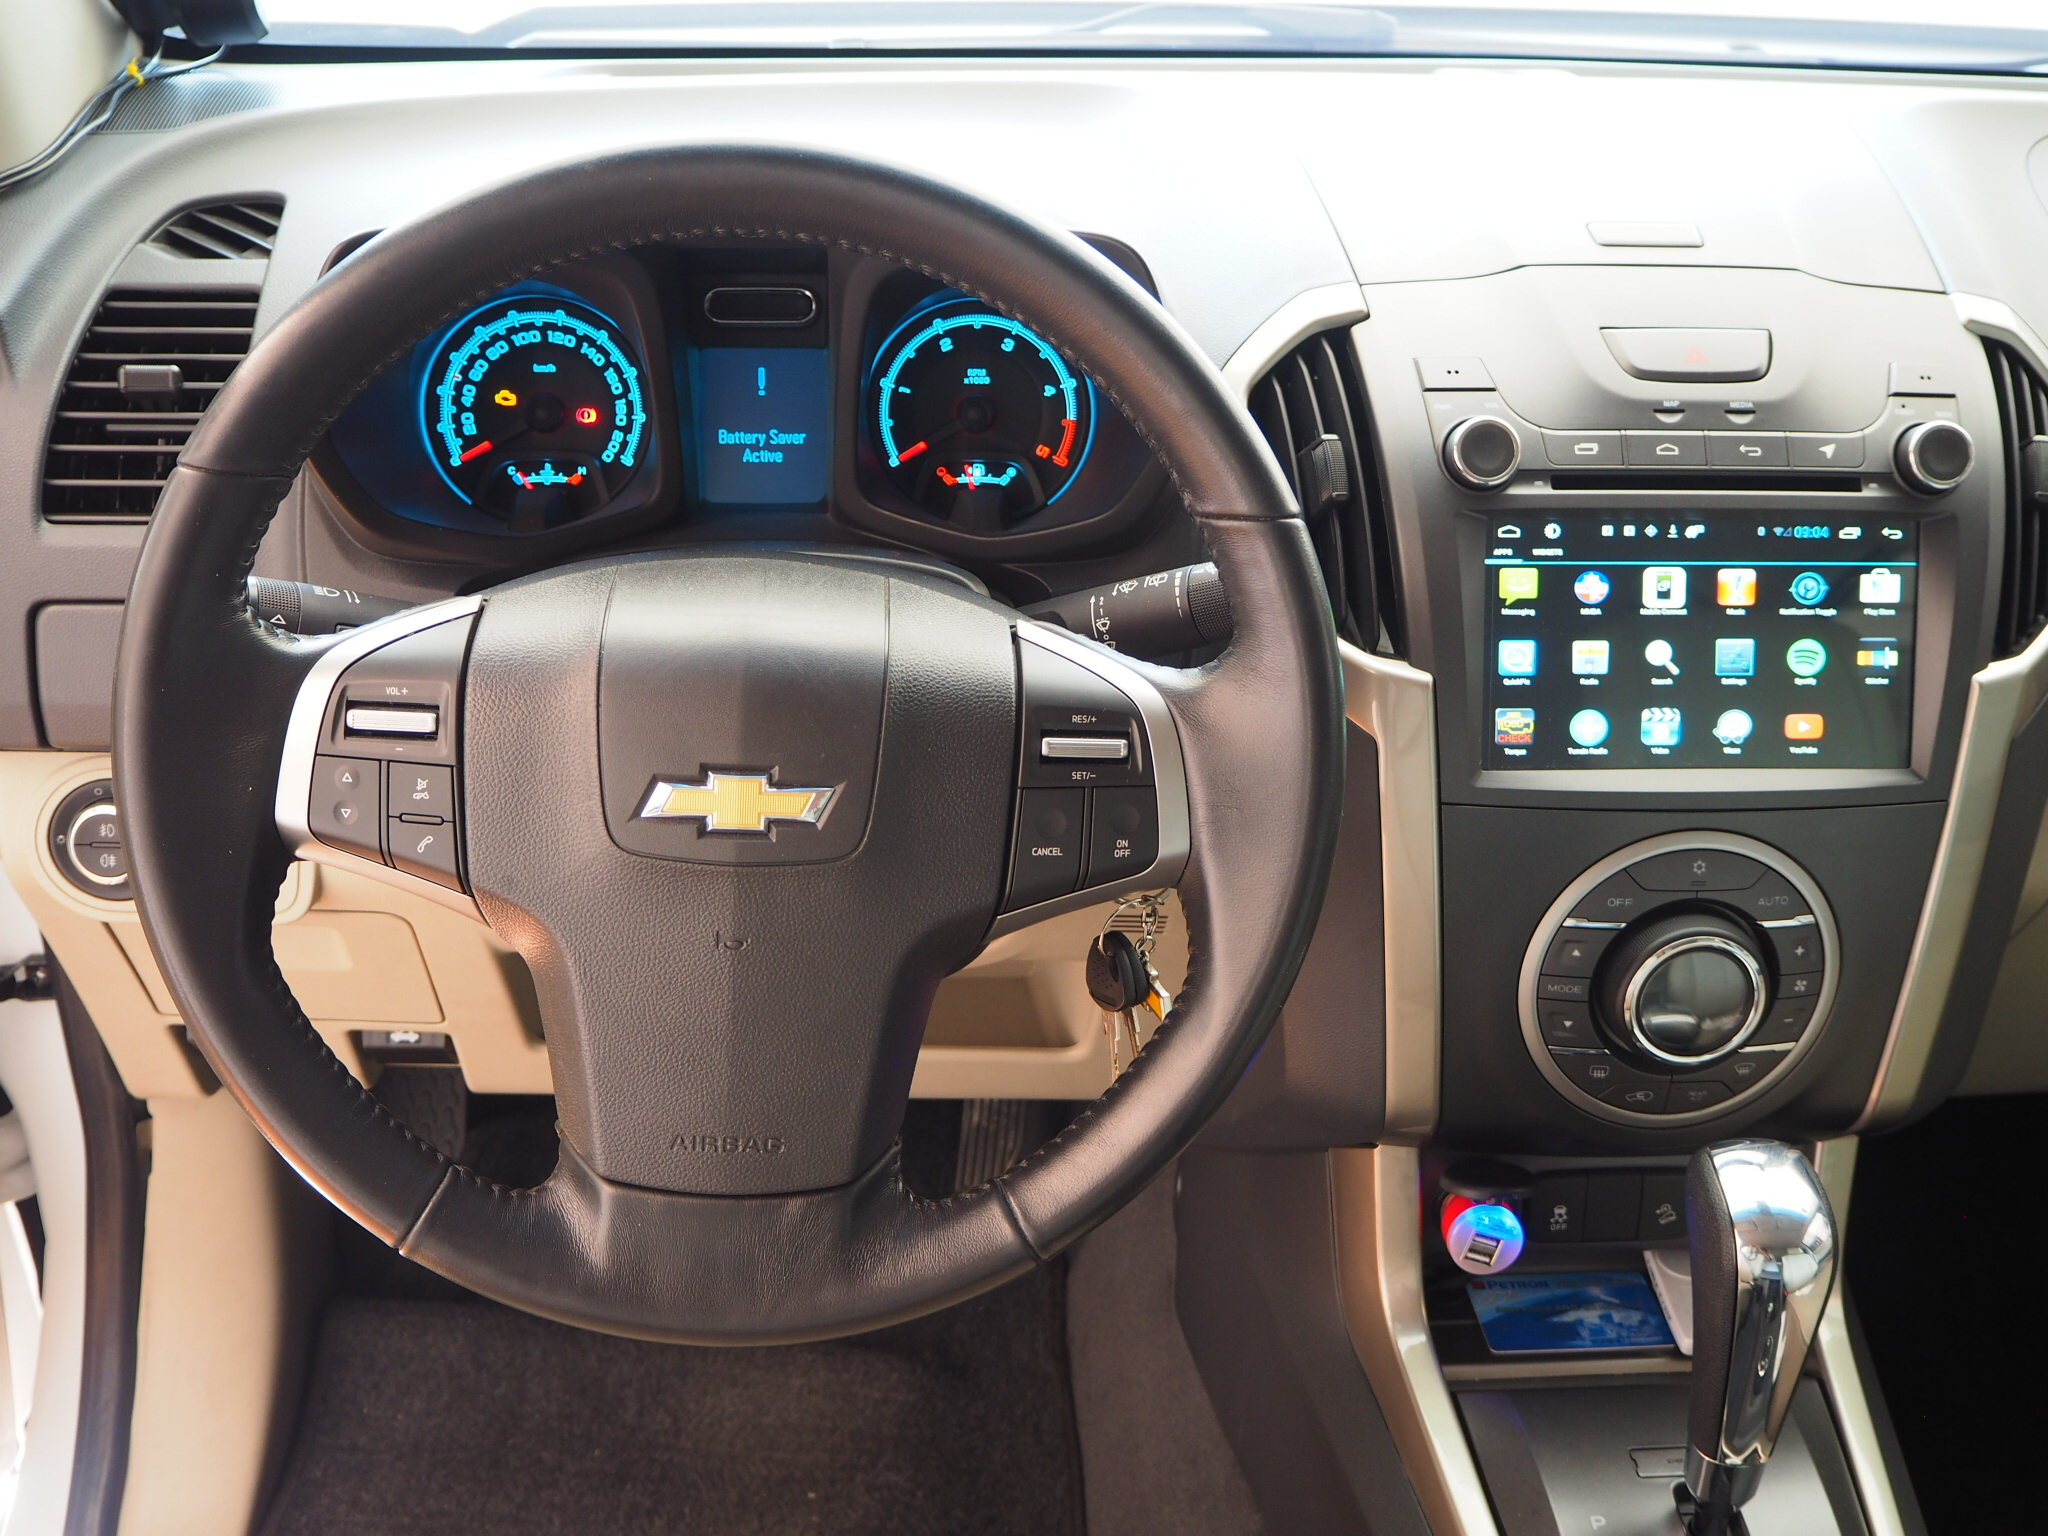 The new android head unit of the trailblazer comes standard in the ltx